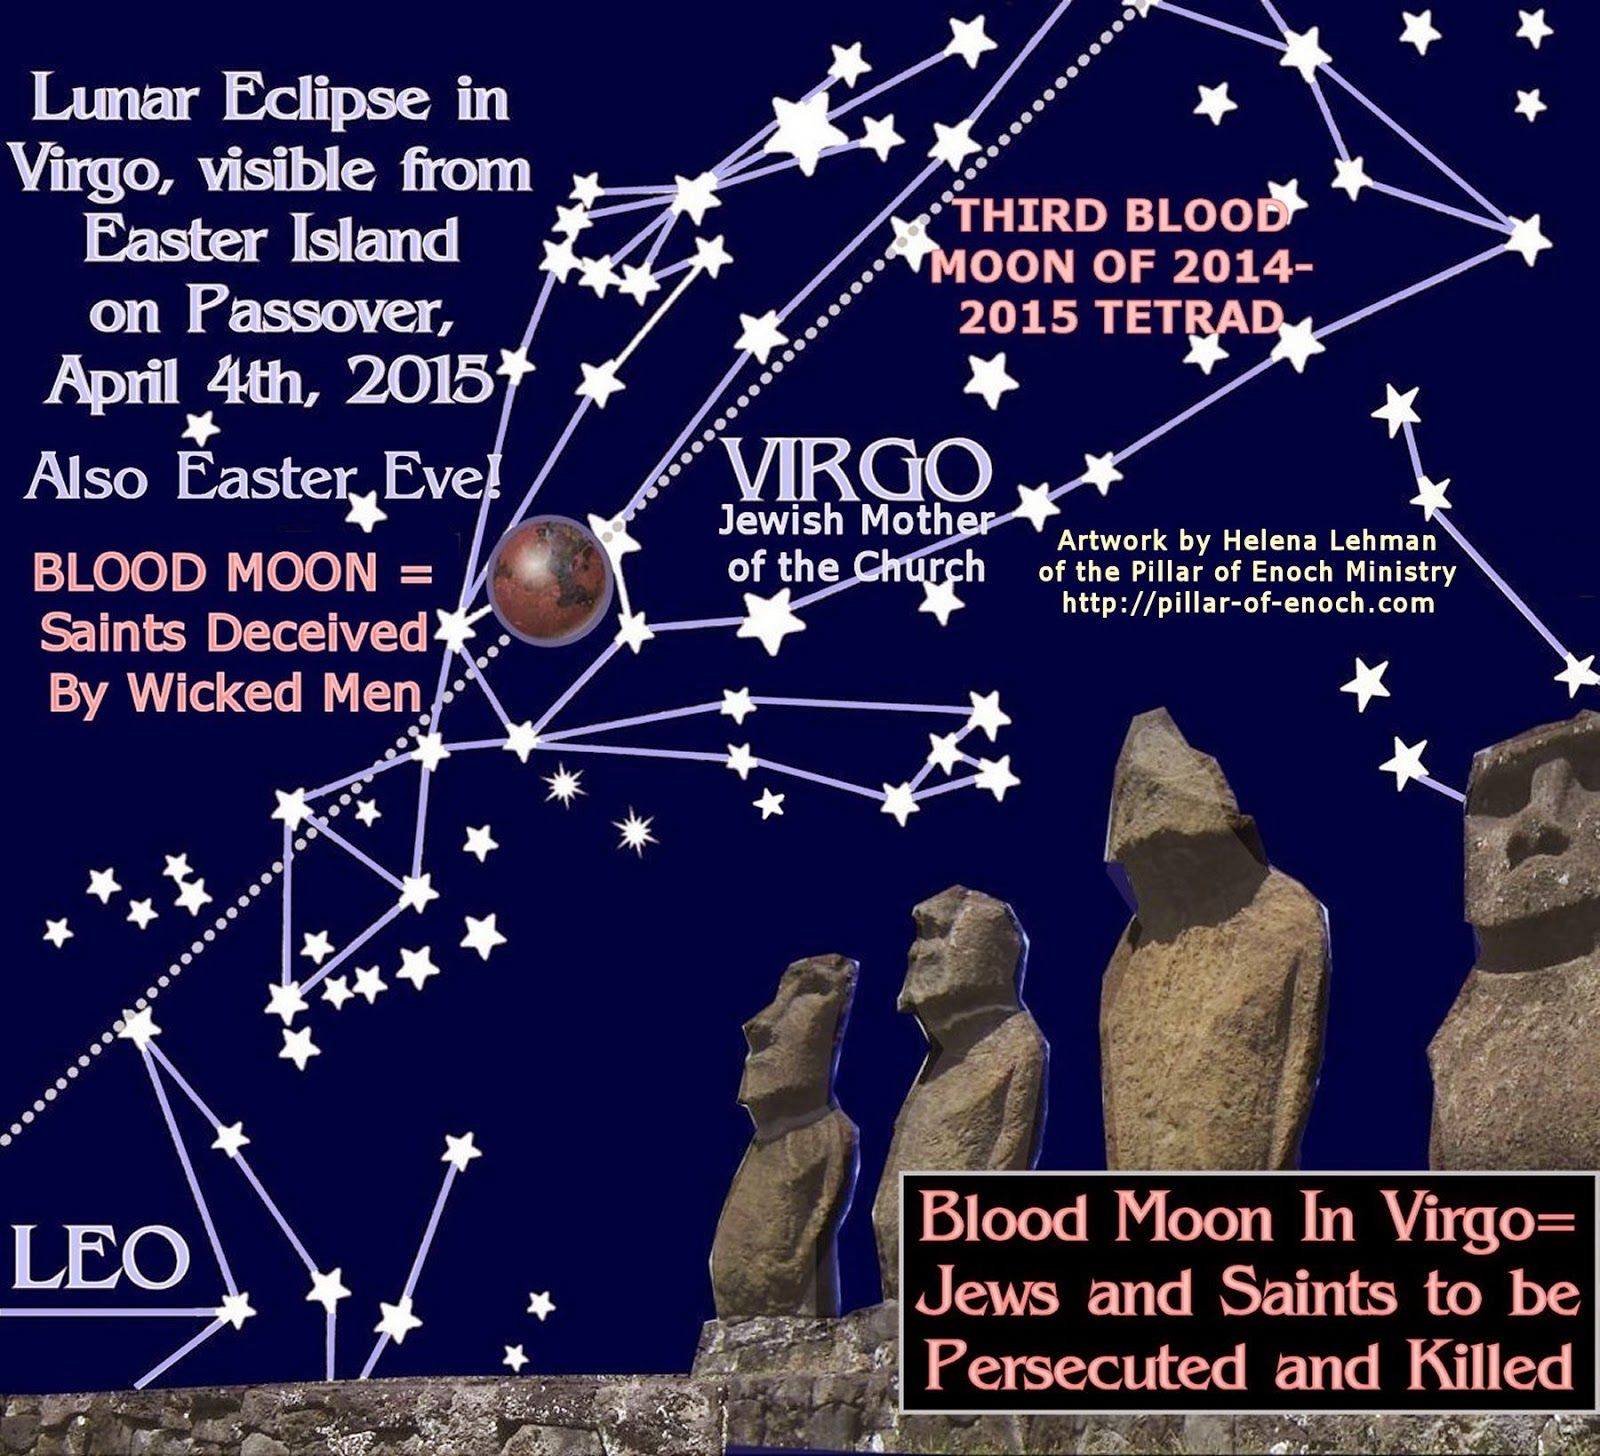 blood moon lunar eclipse virgo - photo #12